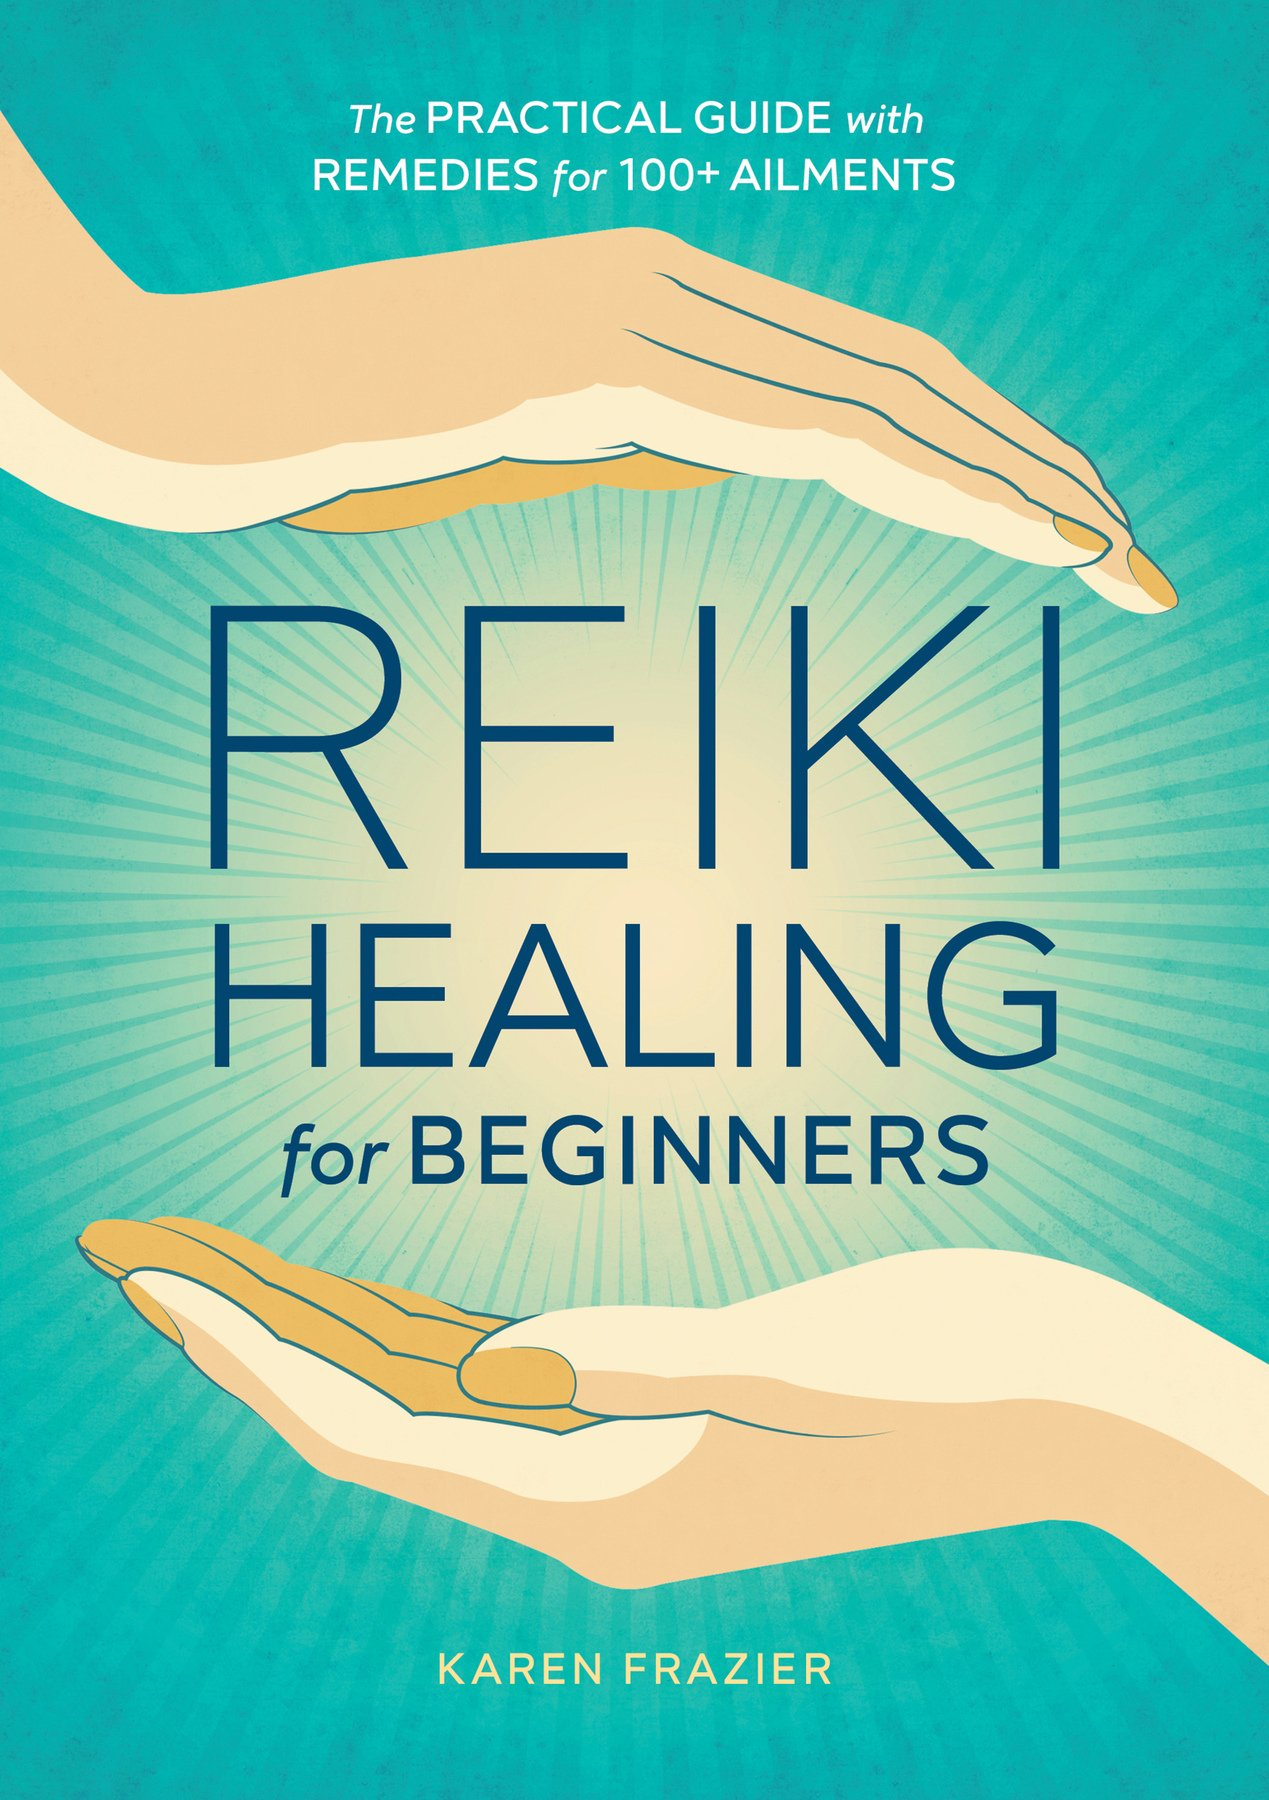 Reiki Healing for Beginners: The Practical Guide with Remedies for 100+  Ailments: Karen Frazier: 9781641521154: Amazon.com: Books